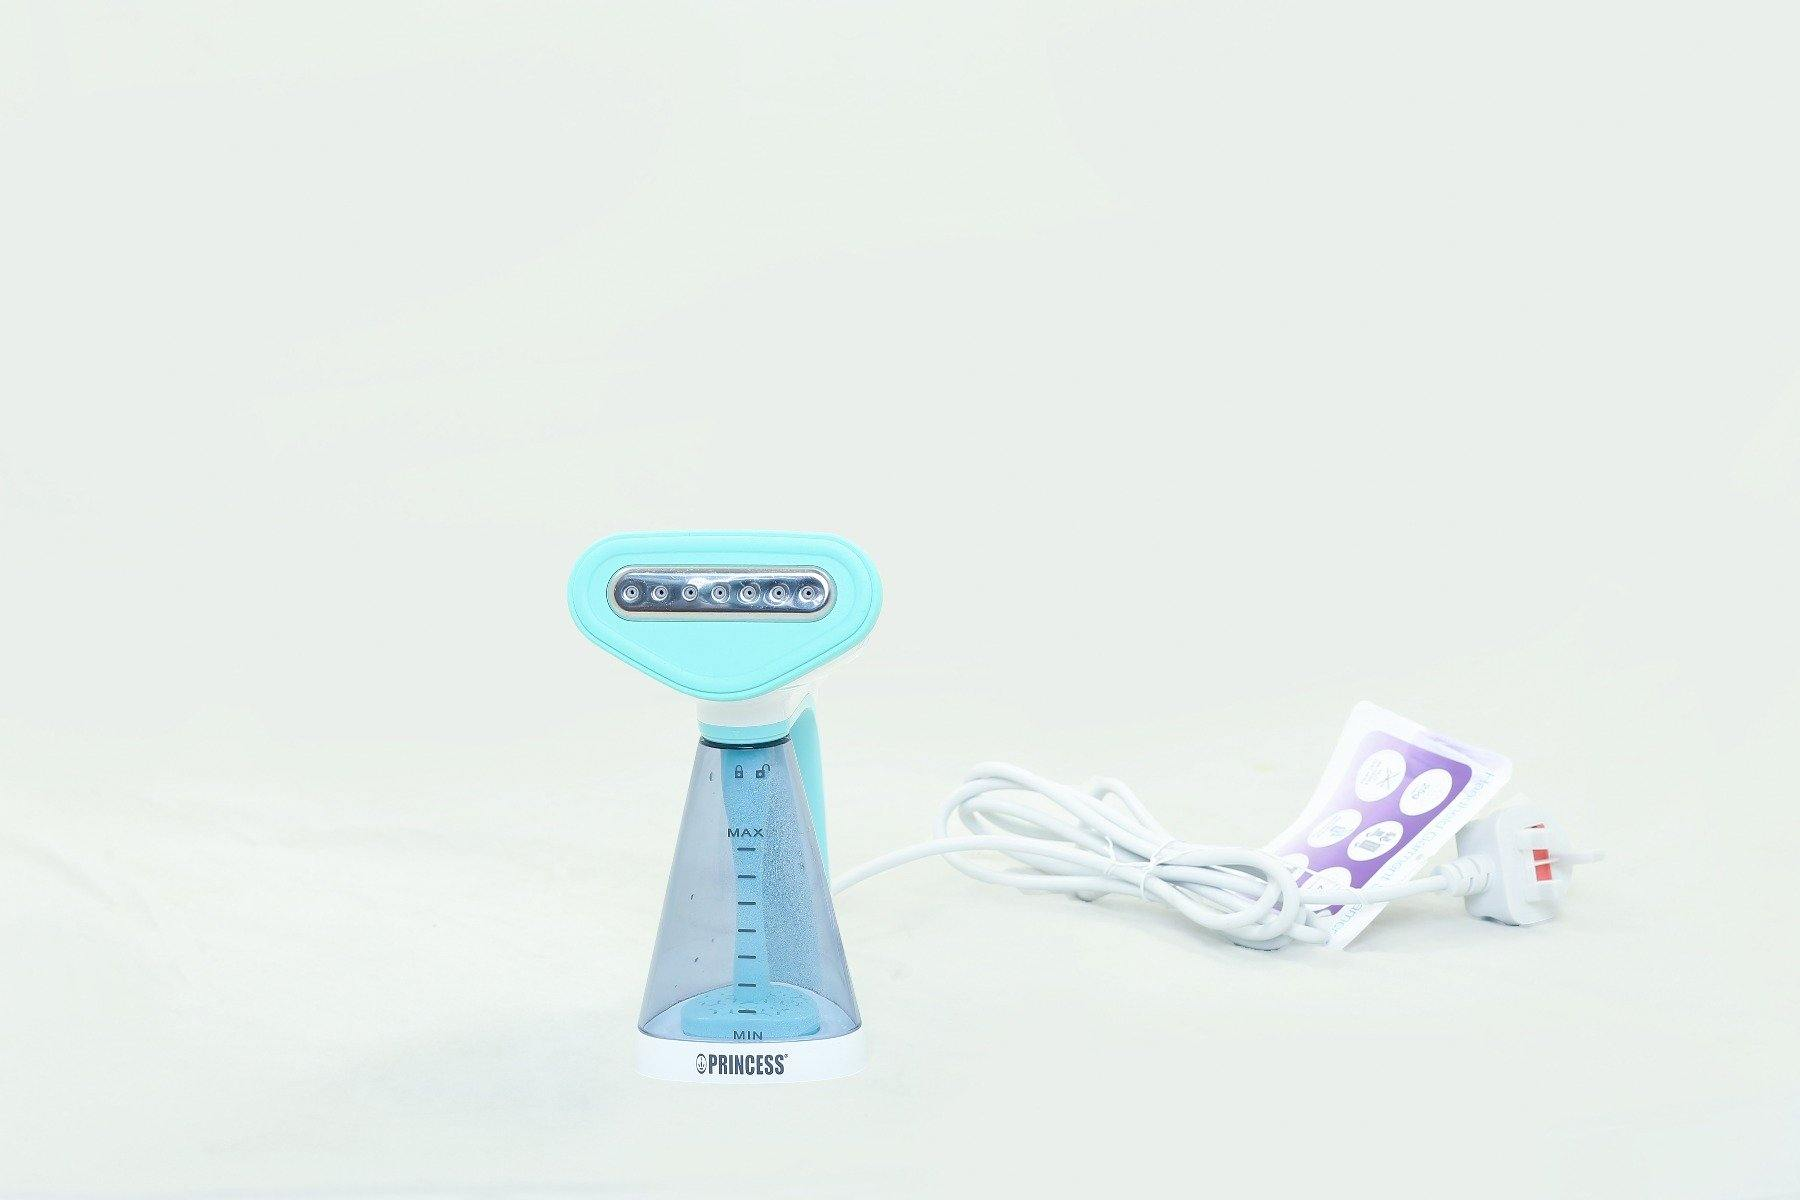 Princess Handheld Garment Steamer